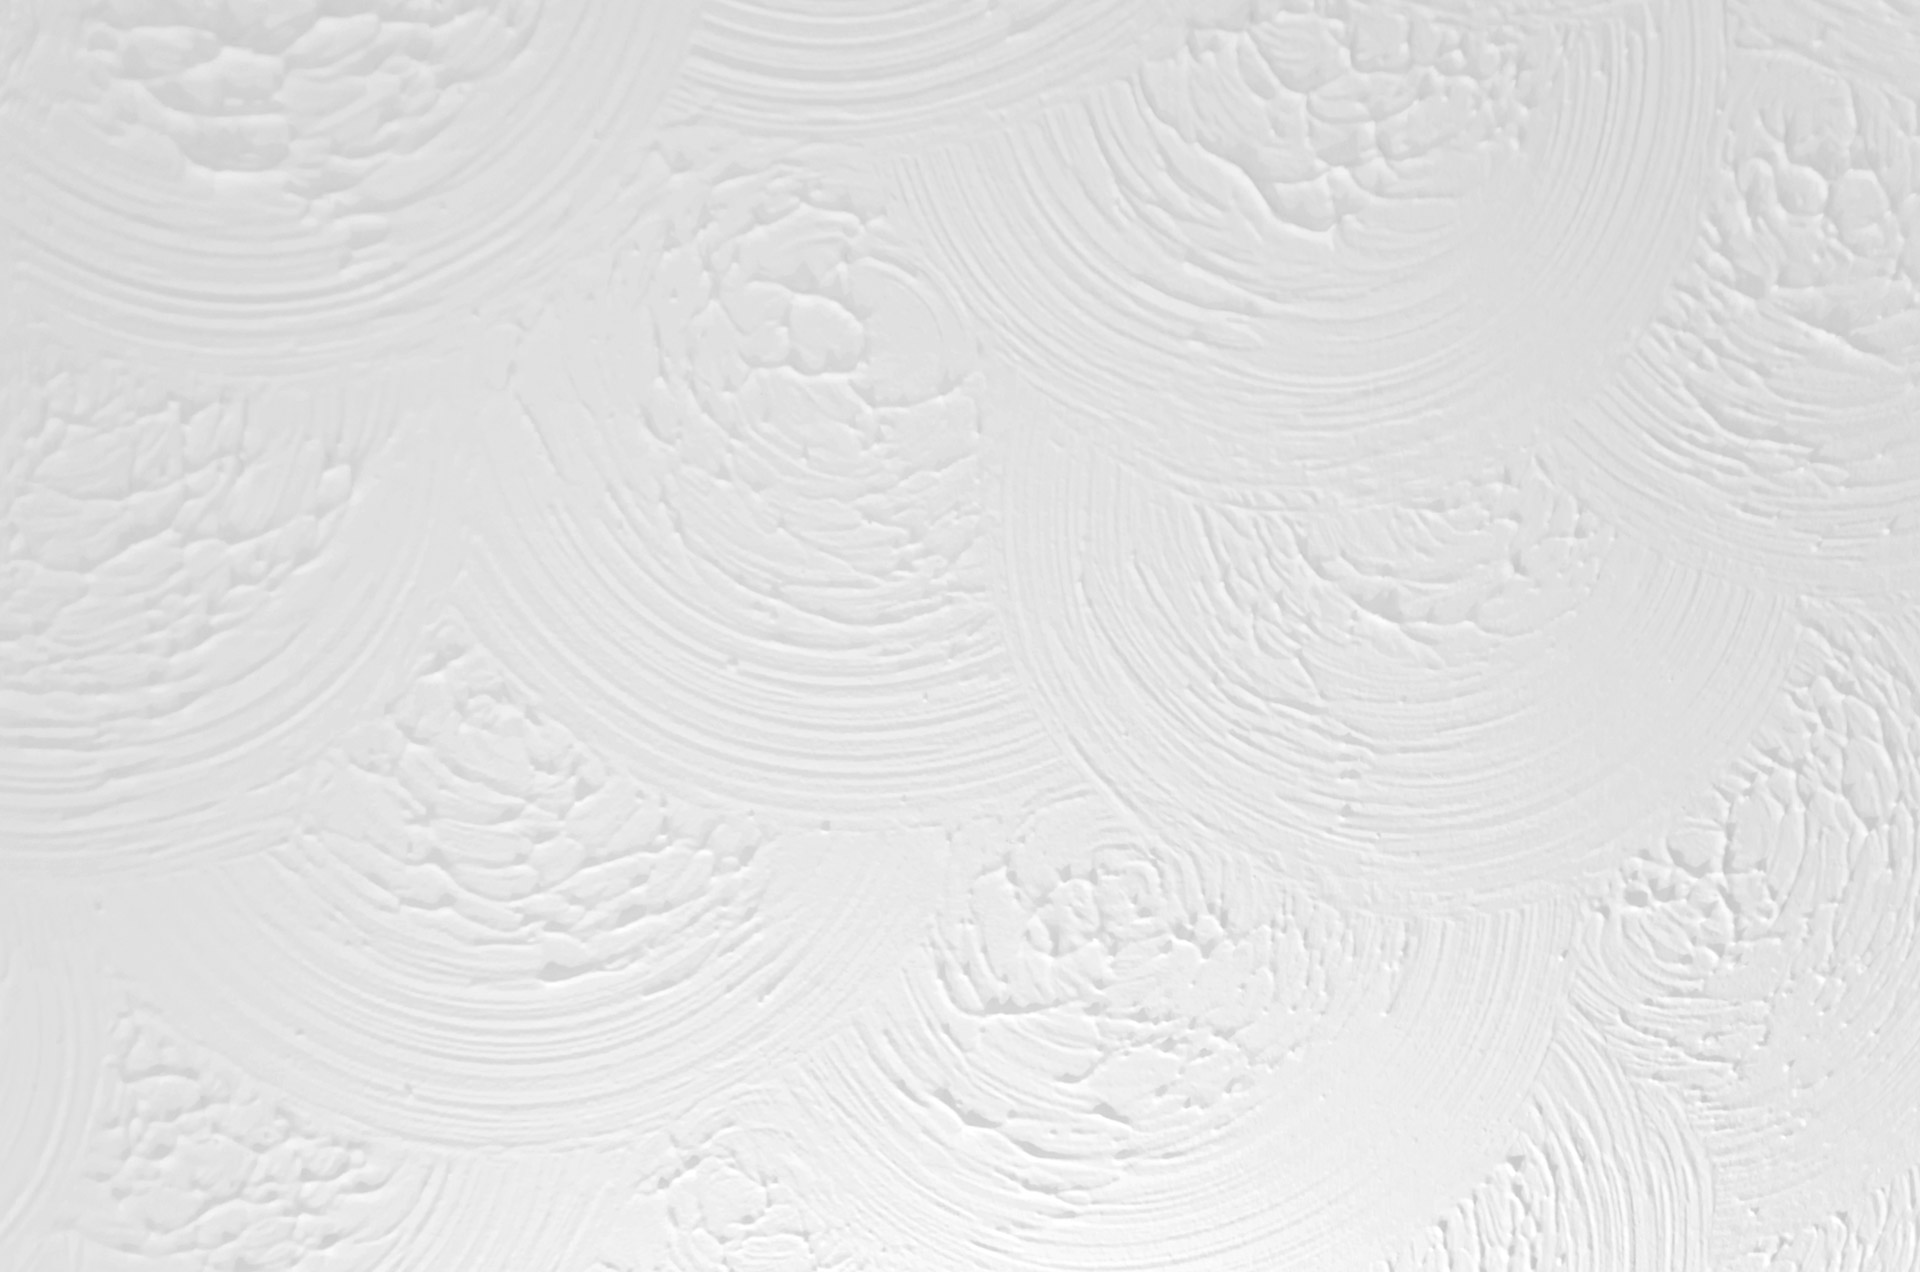 White Wall Painting Background Model Free Photo From Needpix Com